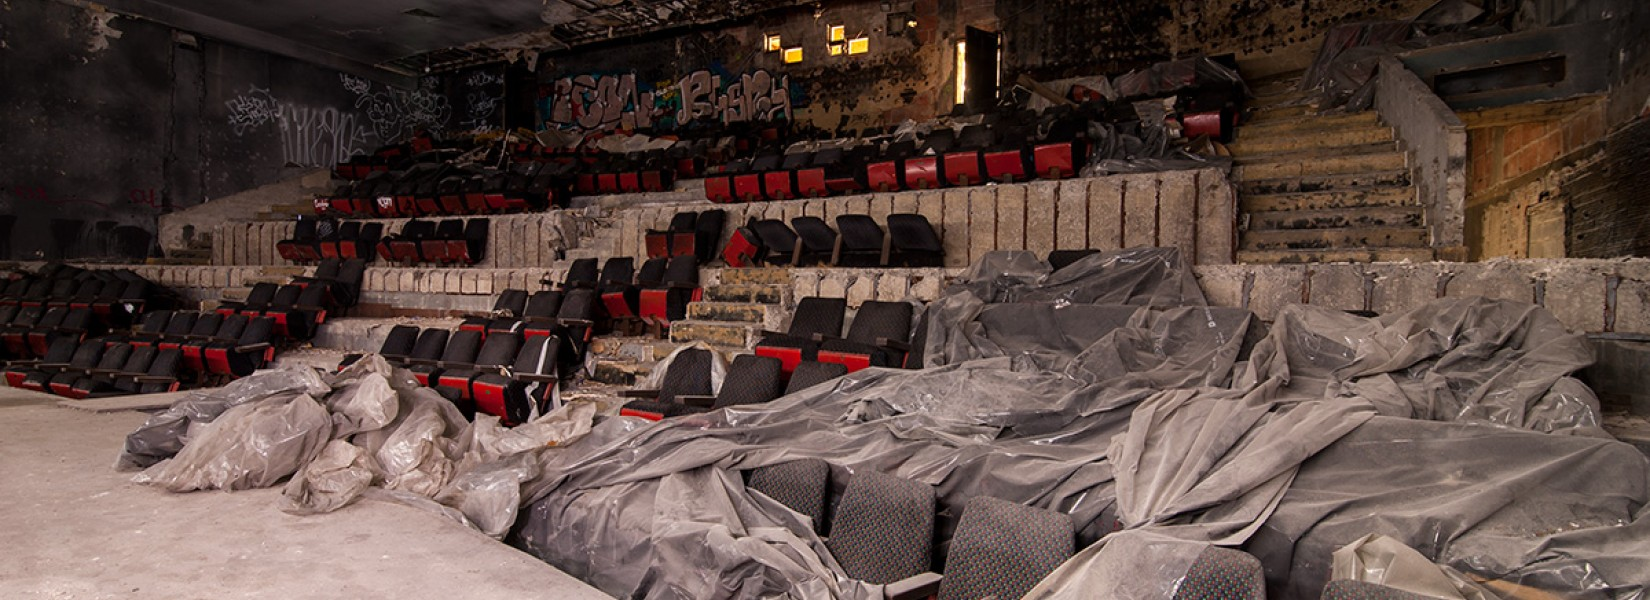 The abandoned theater